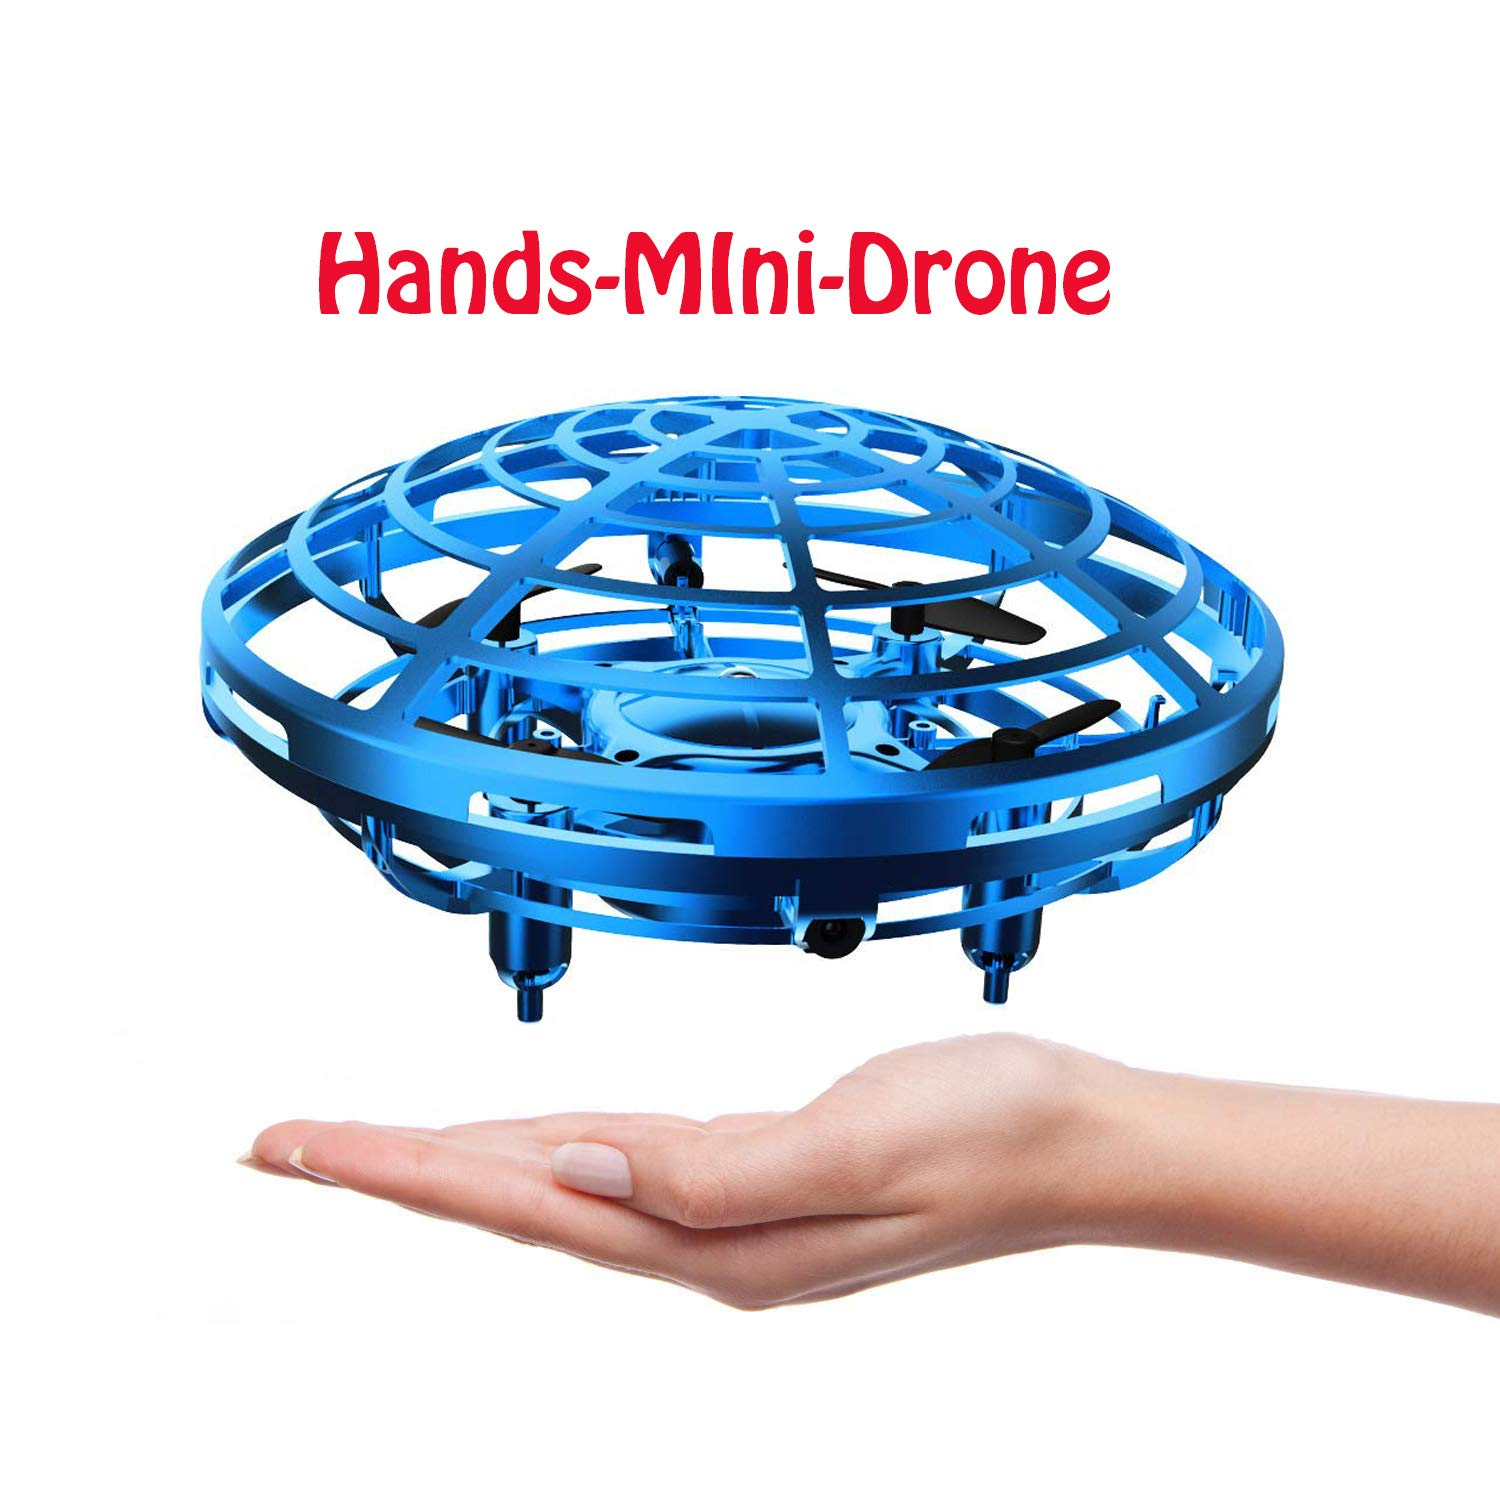 DaycMy Mini UFO Flying Ball Toys, Hand-Controlled Drone Quadcopter Flying Ball Toy Drones ,Infrared Induction Interactive Drone Indoor Flyer Toys with 360° for Kids, Teenagers Boys Girls(Blue) by DaycMy